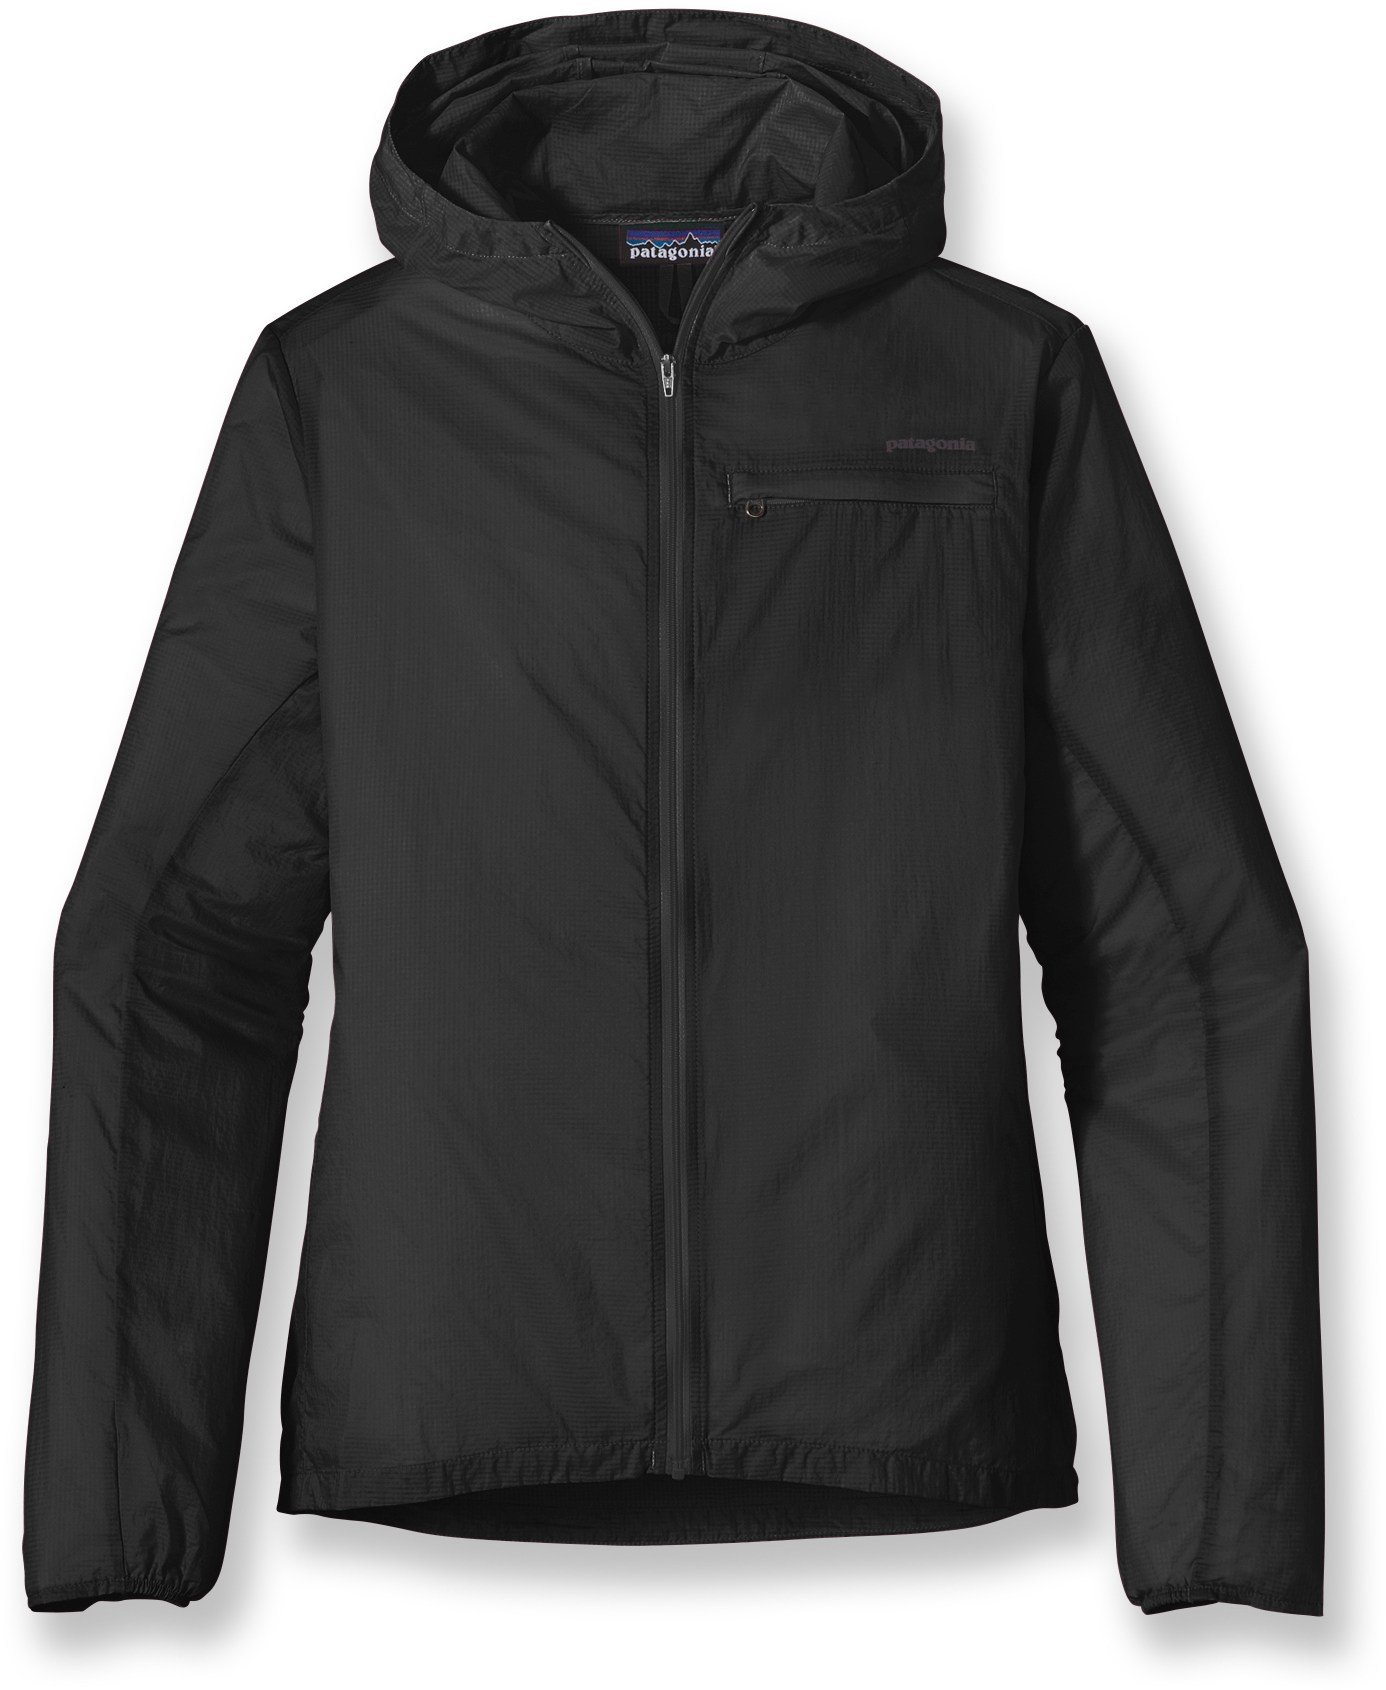 Patagonia Houdini Jacket Womens Style: 24145-BLK Size: XL by Patagonia